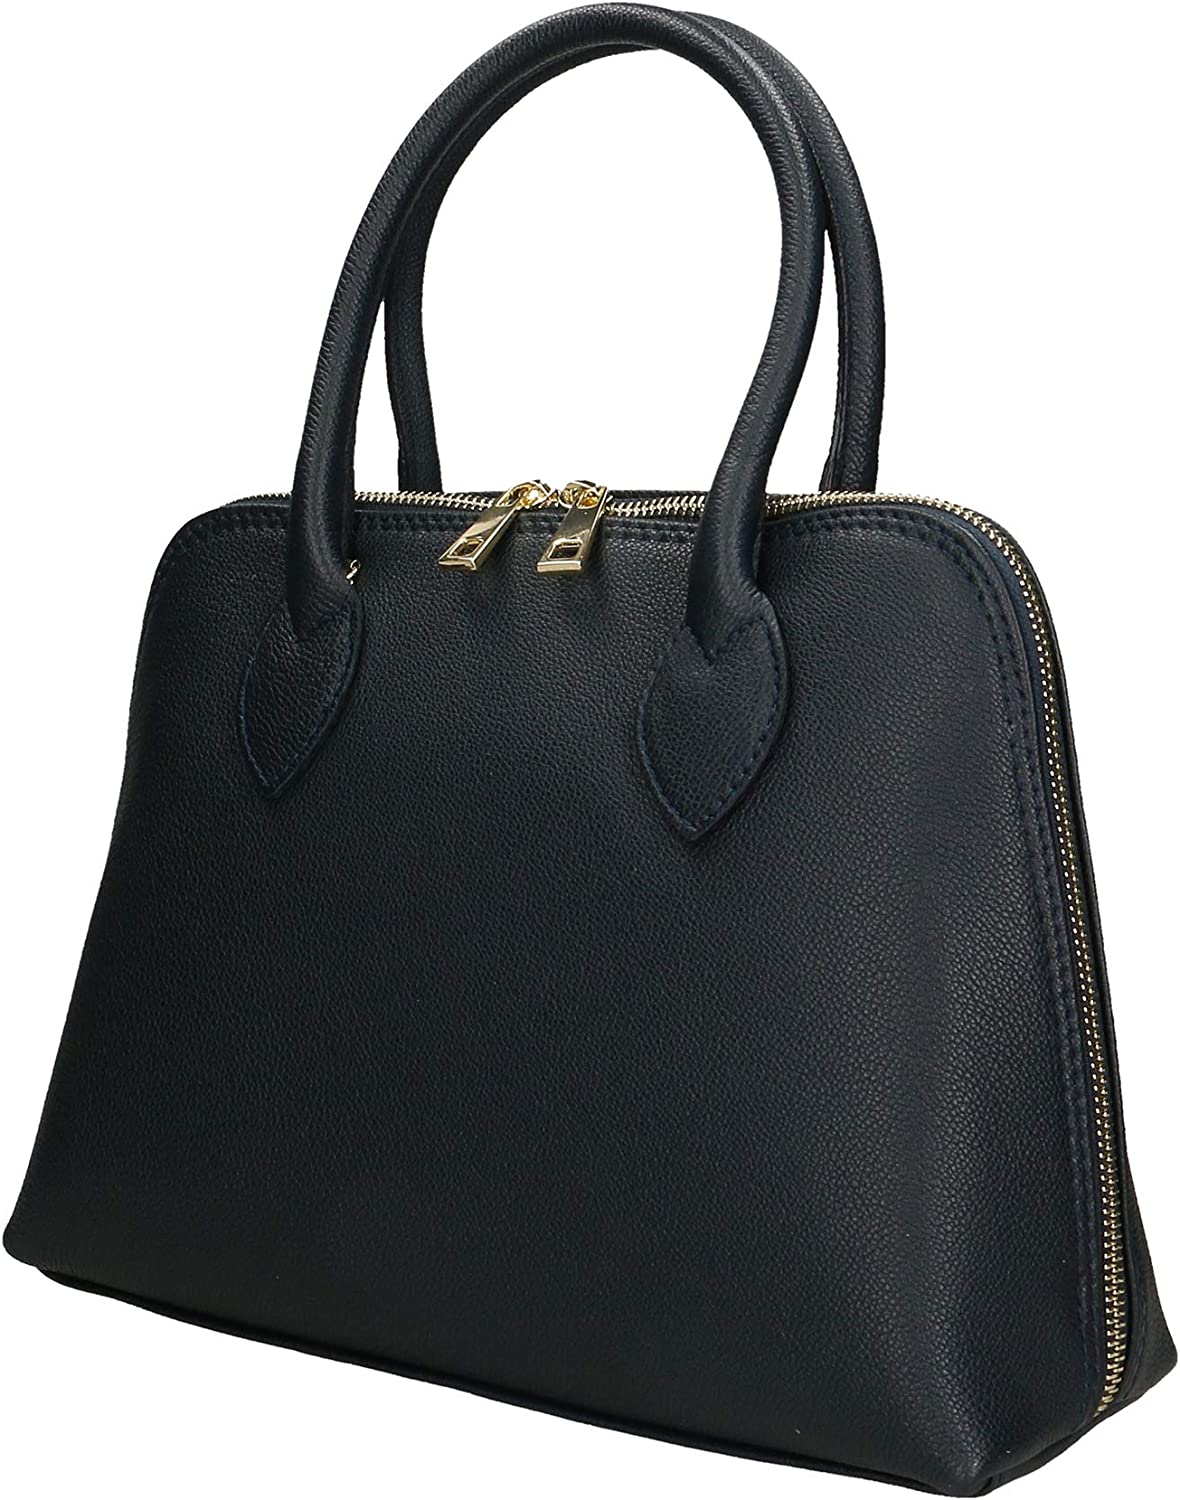 Chicca Borse Borsa a Mano Donna in Pelle Made in Italy 31x22x10 Cm Blu